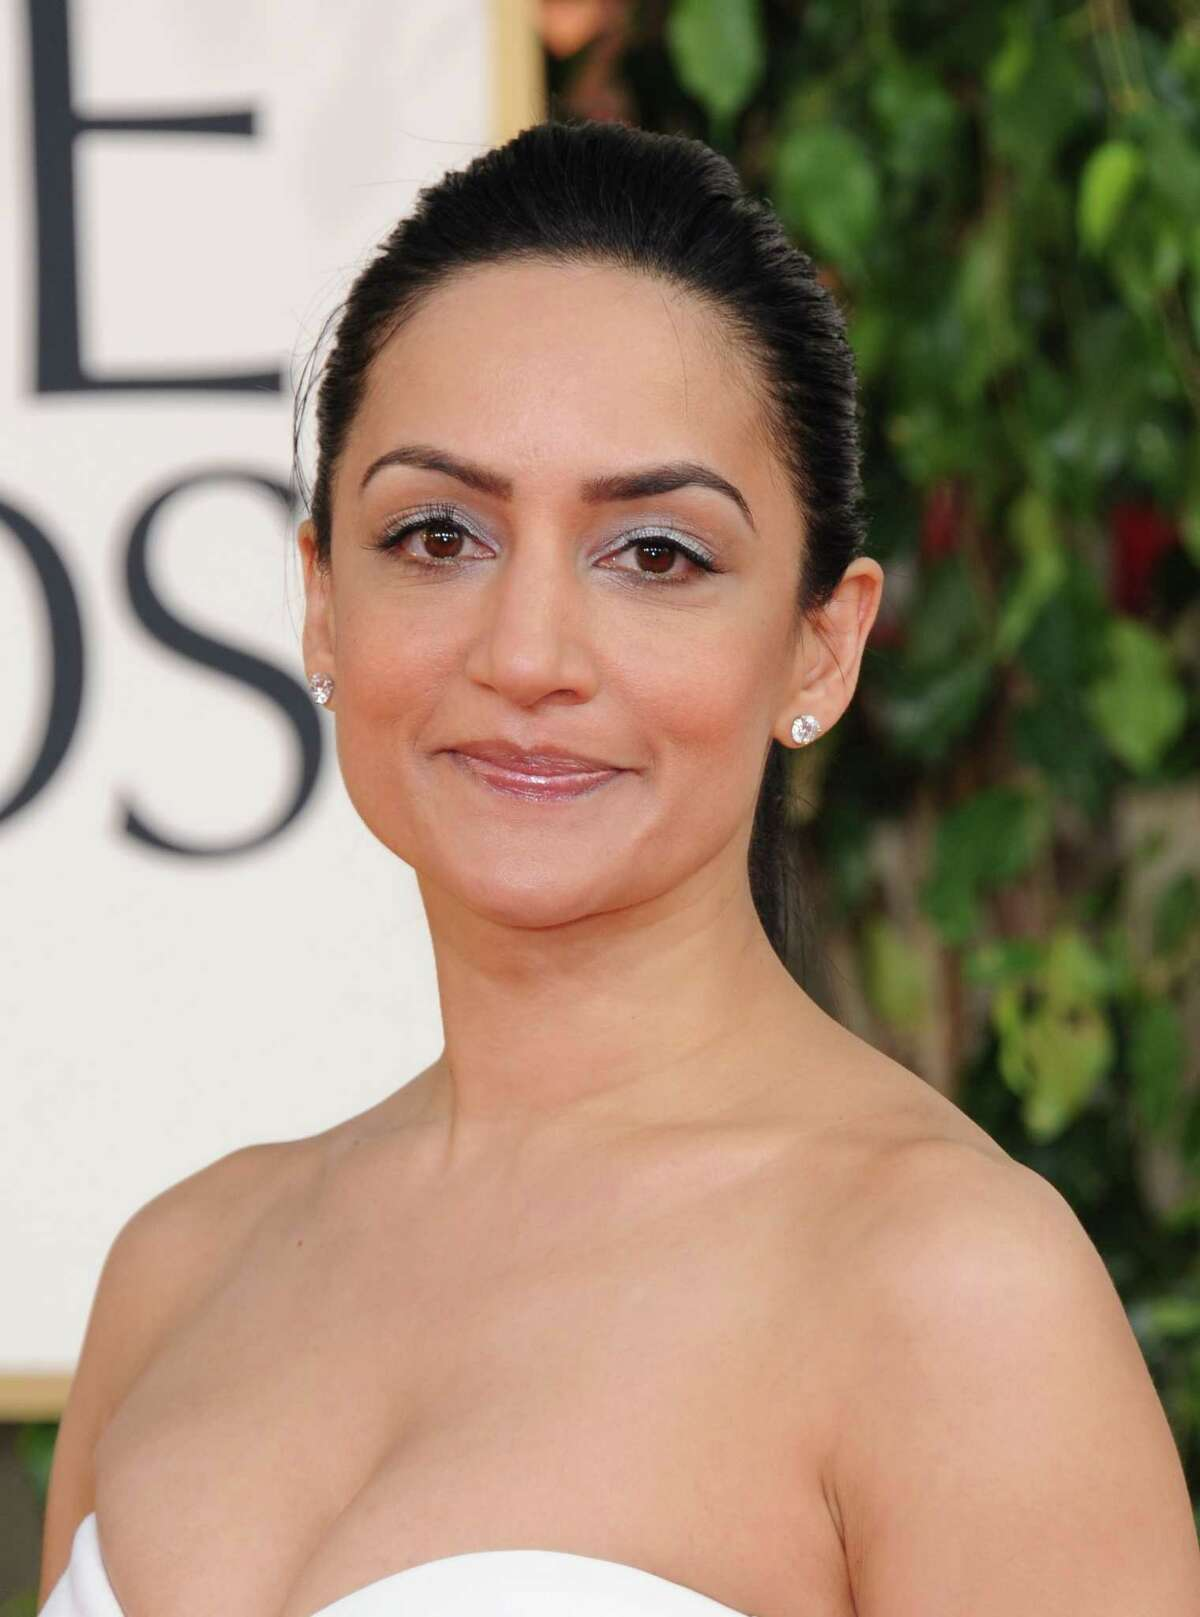 Actress Archie Panjabi arrives at the 70th Annual Golden Globe Awards at the Beverly Hilton Hotel on Sunday Jan. 13, 2013, in Beverly Hills, Calif. (Photo by Jordan Strauss/Invision/AP)